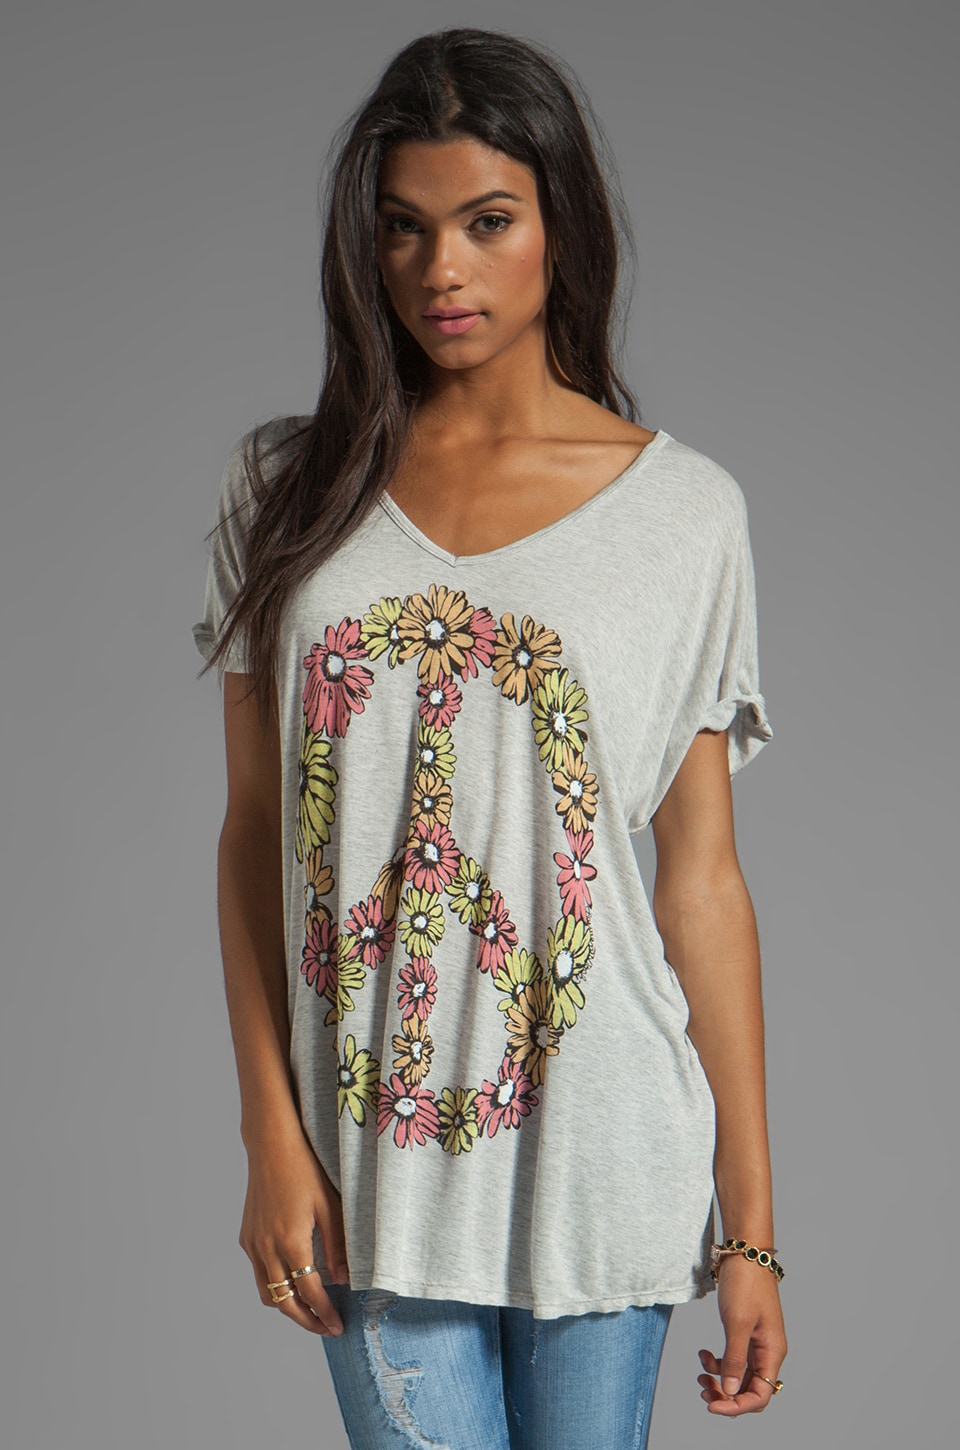 Lauren Moshi April Color Peace Daisy Oversized Tee en Perle